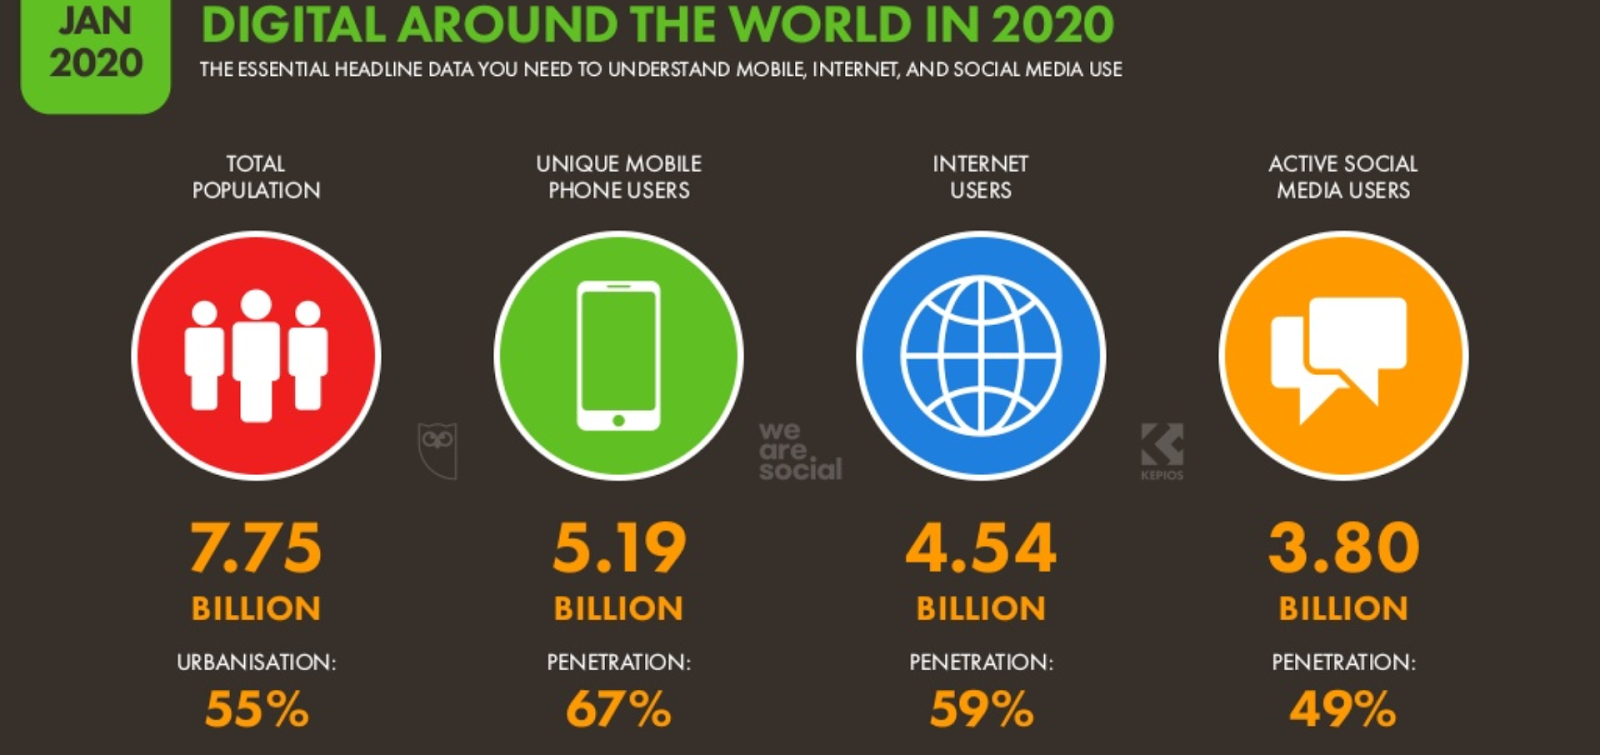 "Infographic entitled: ""Jan 2020 - Digital Around the World in 2020 - The essential headline data you need to understand mobile, internet and social media use""The graphics show total population at 7.75 billion with urbanisation at 55%then unique mobile phone users at 5.19 billion with penetration at 67%then Internet users at 4.54 billion with penetration at 59%and finally, active social media users at 3.8 billion with penetration at 49%."